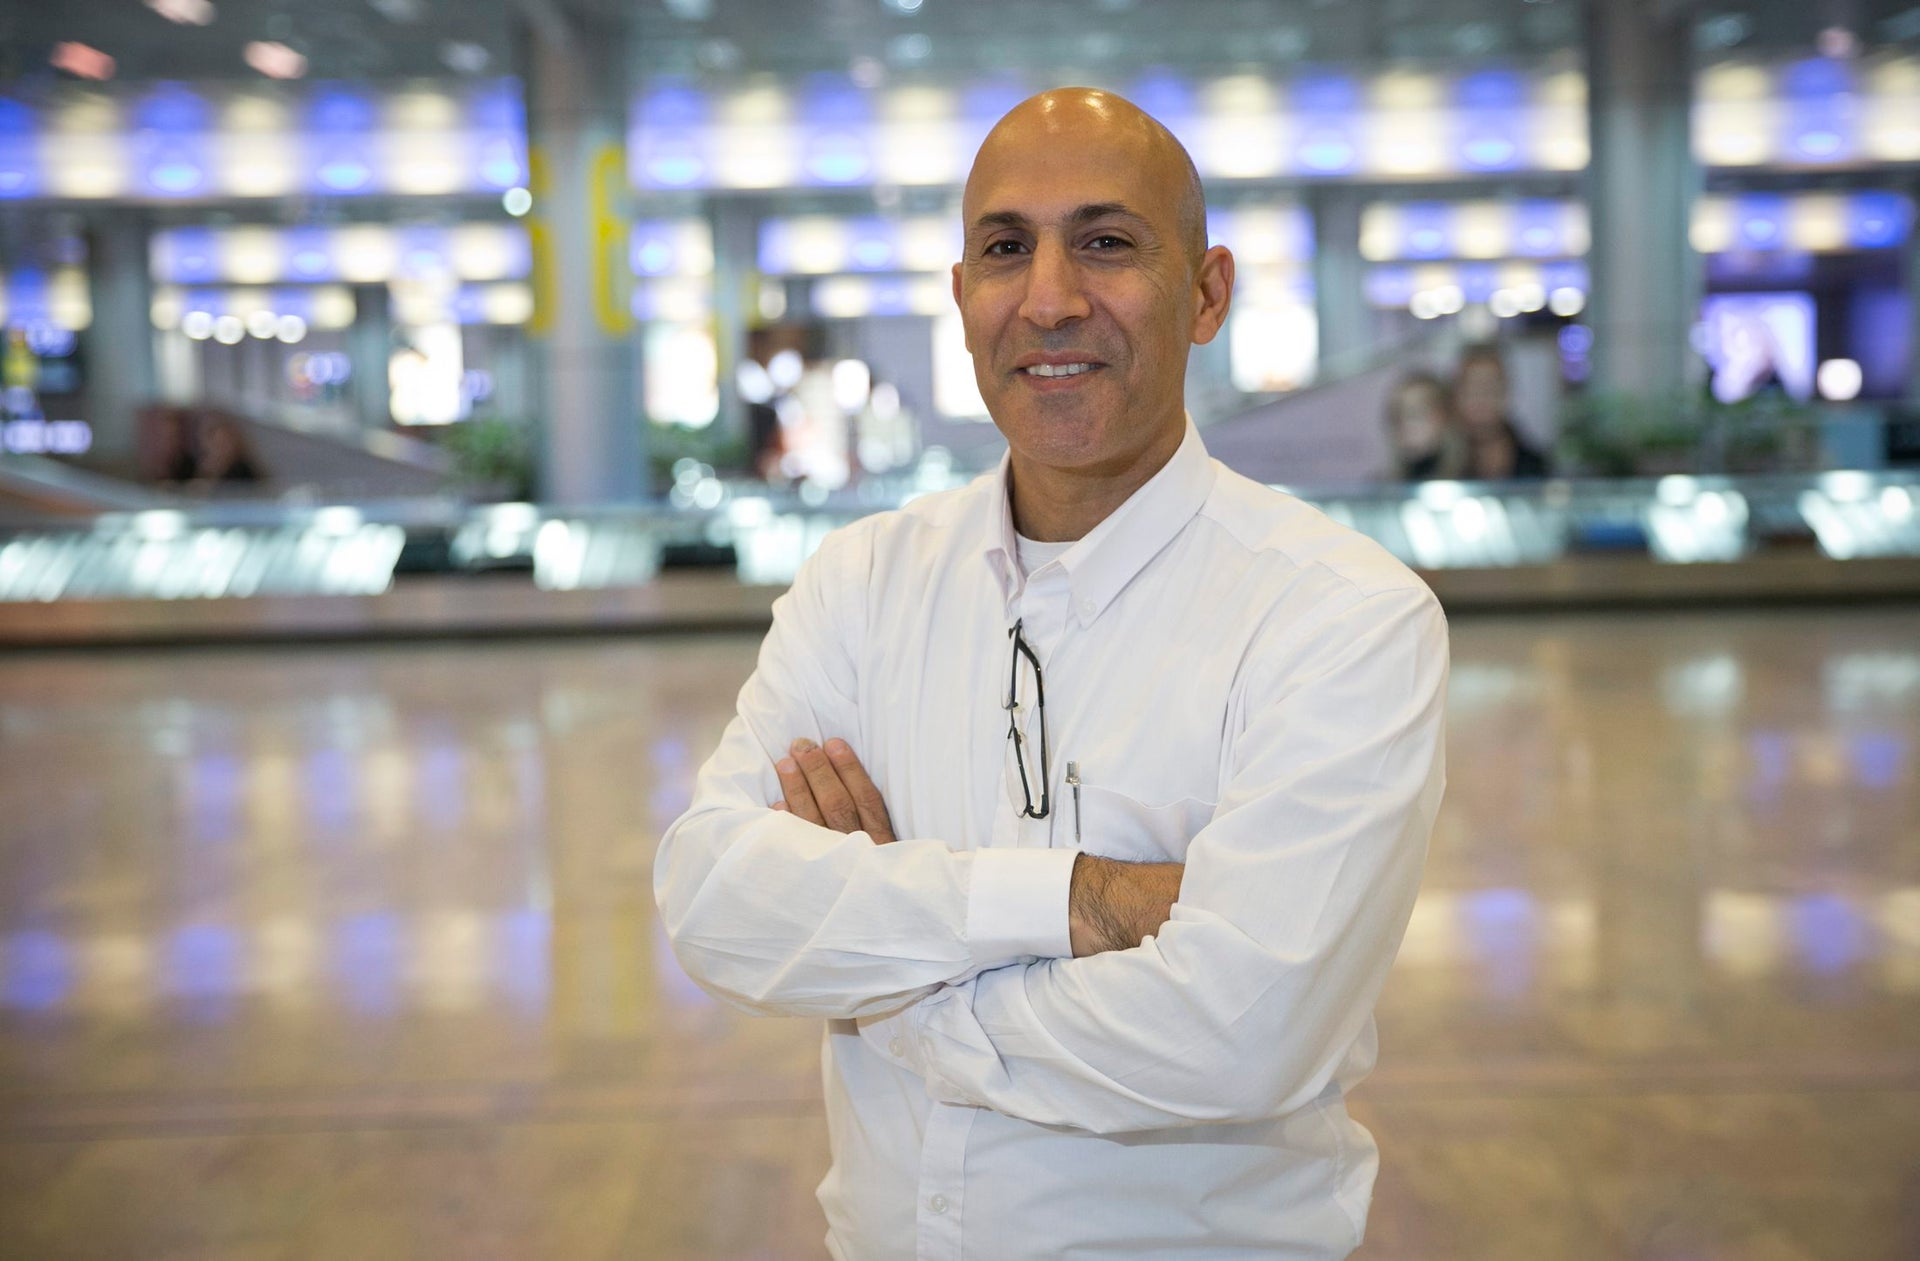 Yoram Aharoni, the nice gentleman who will be confiscating your contraband.